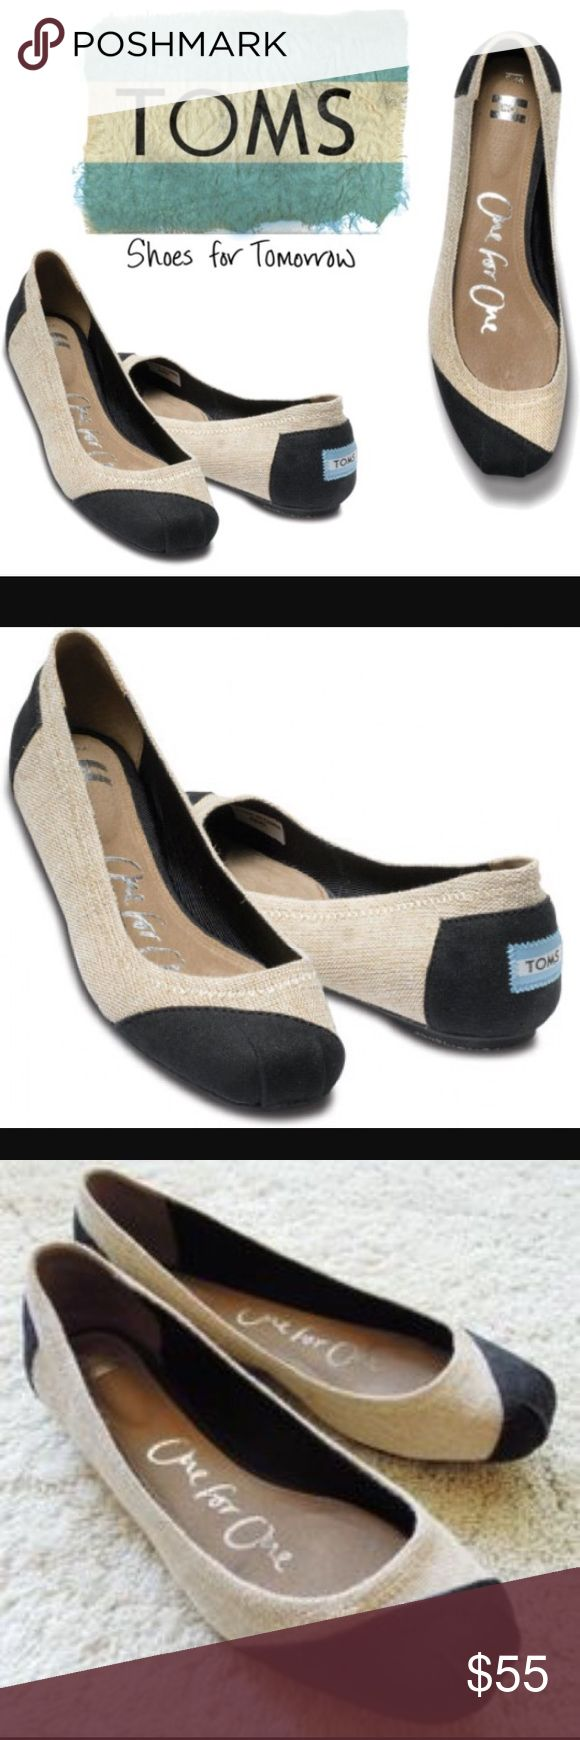 """$158 RETAIL TOMS RARE BULAP COMFY MUST HAVE FLATS $158.00 PLUS TAX RETAIL TOMS RARE BULAP COMFY MUST HAVE FLATS WOMENS SIZE 9.5 (sole measures 10"""" inches across the outside) WORN 5x GREAT USED CONDITION PLEASE SEE ALL PICTURES PRIOR TO PURCHASE. GREAT COLORS MARCH EVERYTHING. FEEL LIKE SLIPPERS CAN WEAR THEM ALL DAY. •••PRICED TO SELL SAME DAY, OFFERS WELCOME THROUGH THE OFFER OPTION, NO TRADES OR HOLDS••• TOMS Shoes Flats & Loafers"""